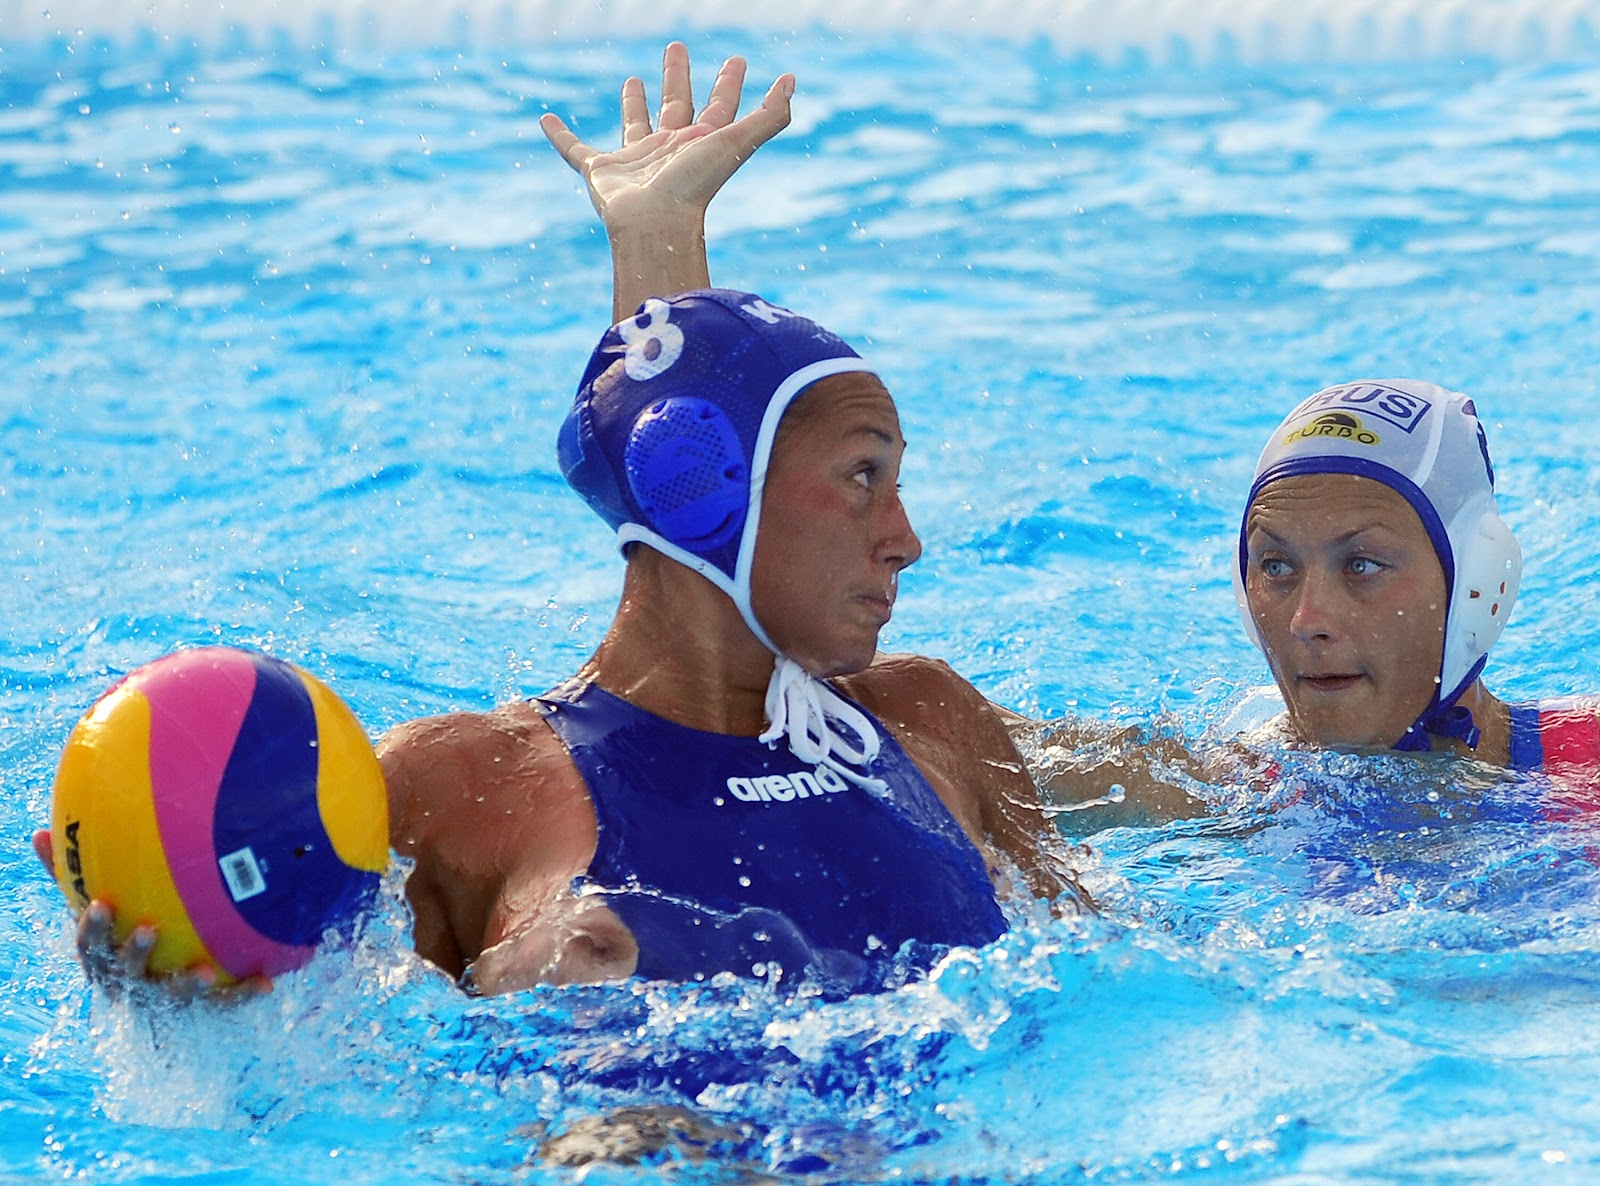 Womens water polo suit malfunction